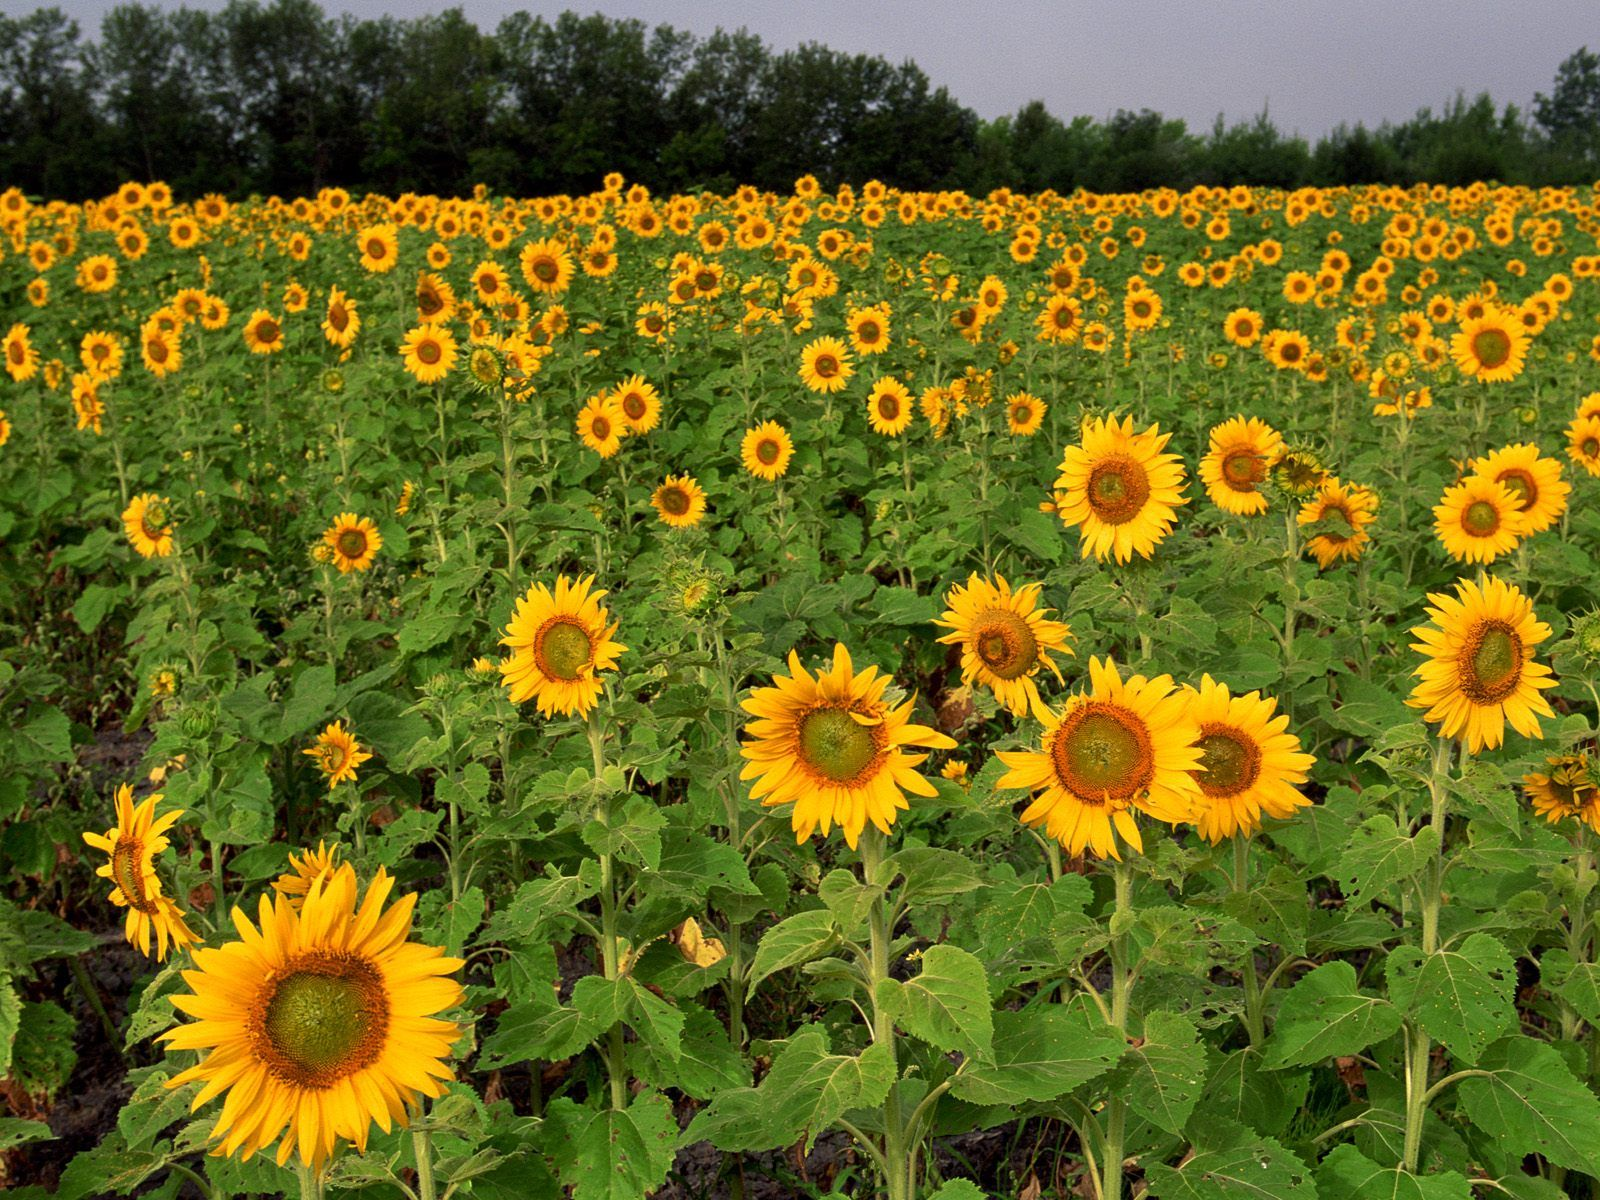 Field of Sunflowers North Dakota Wallpaper by sosyalinsan on 1600x1200